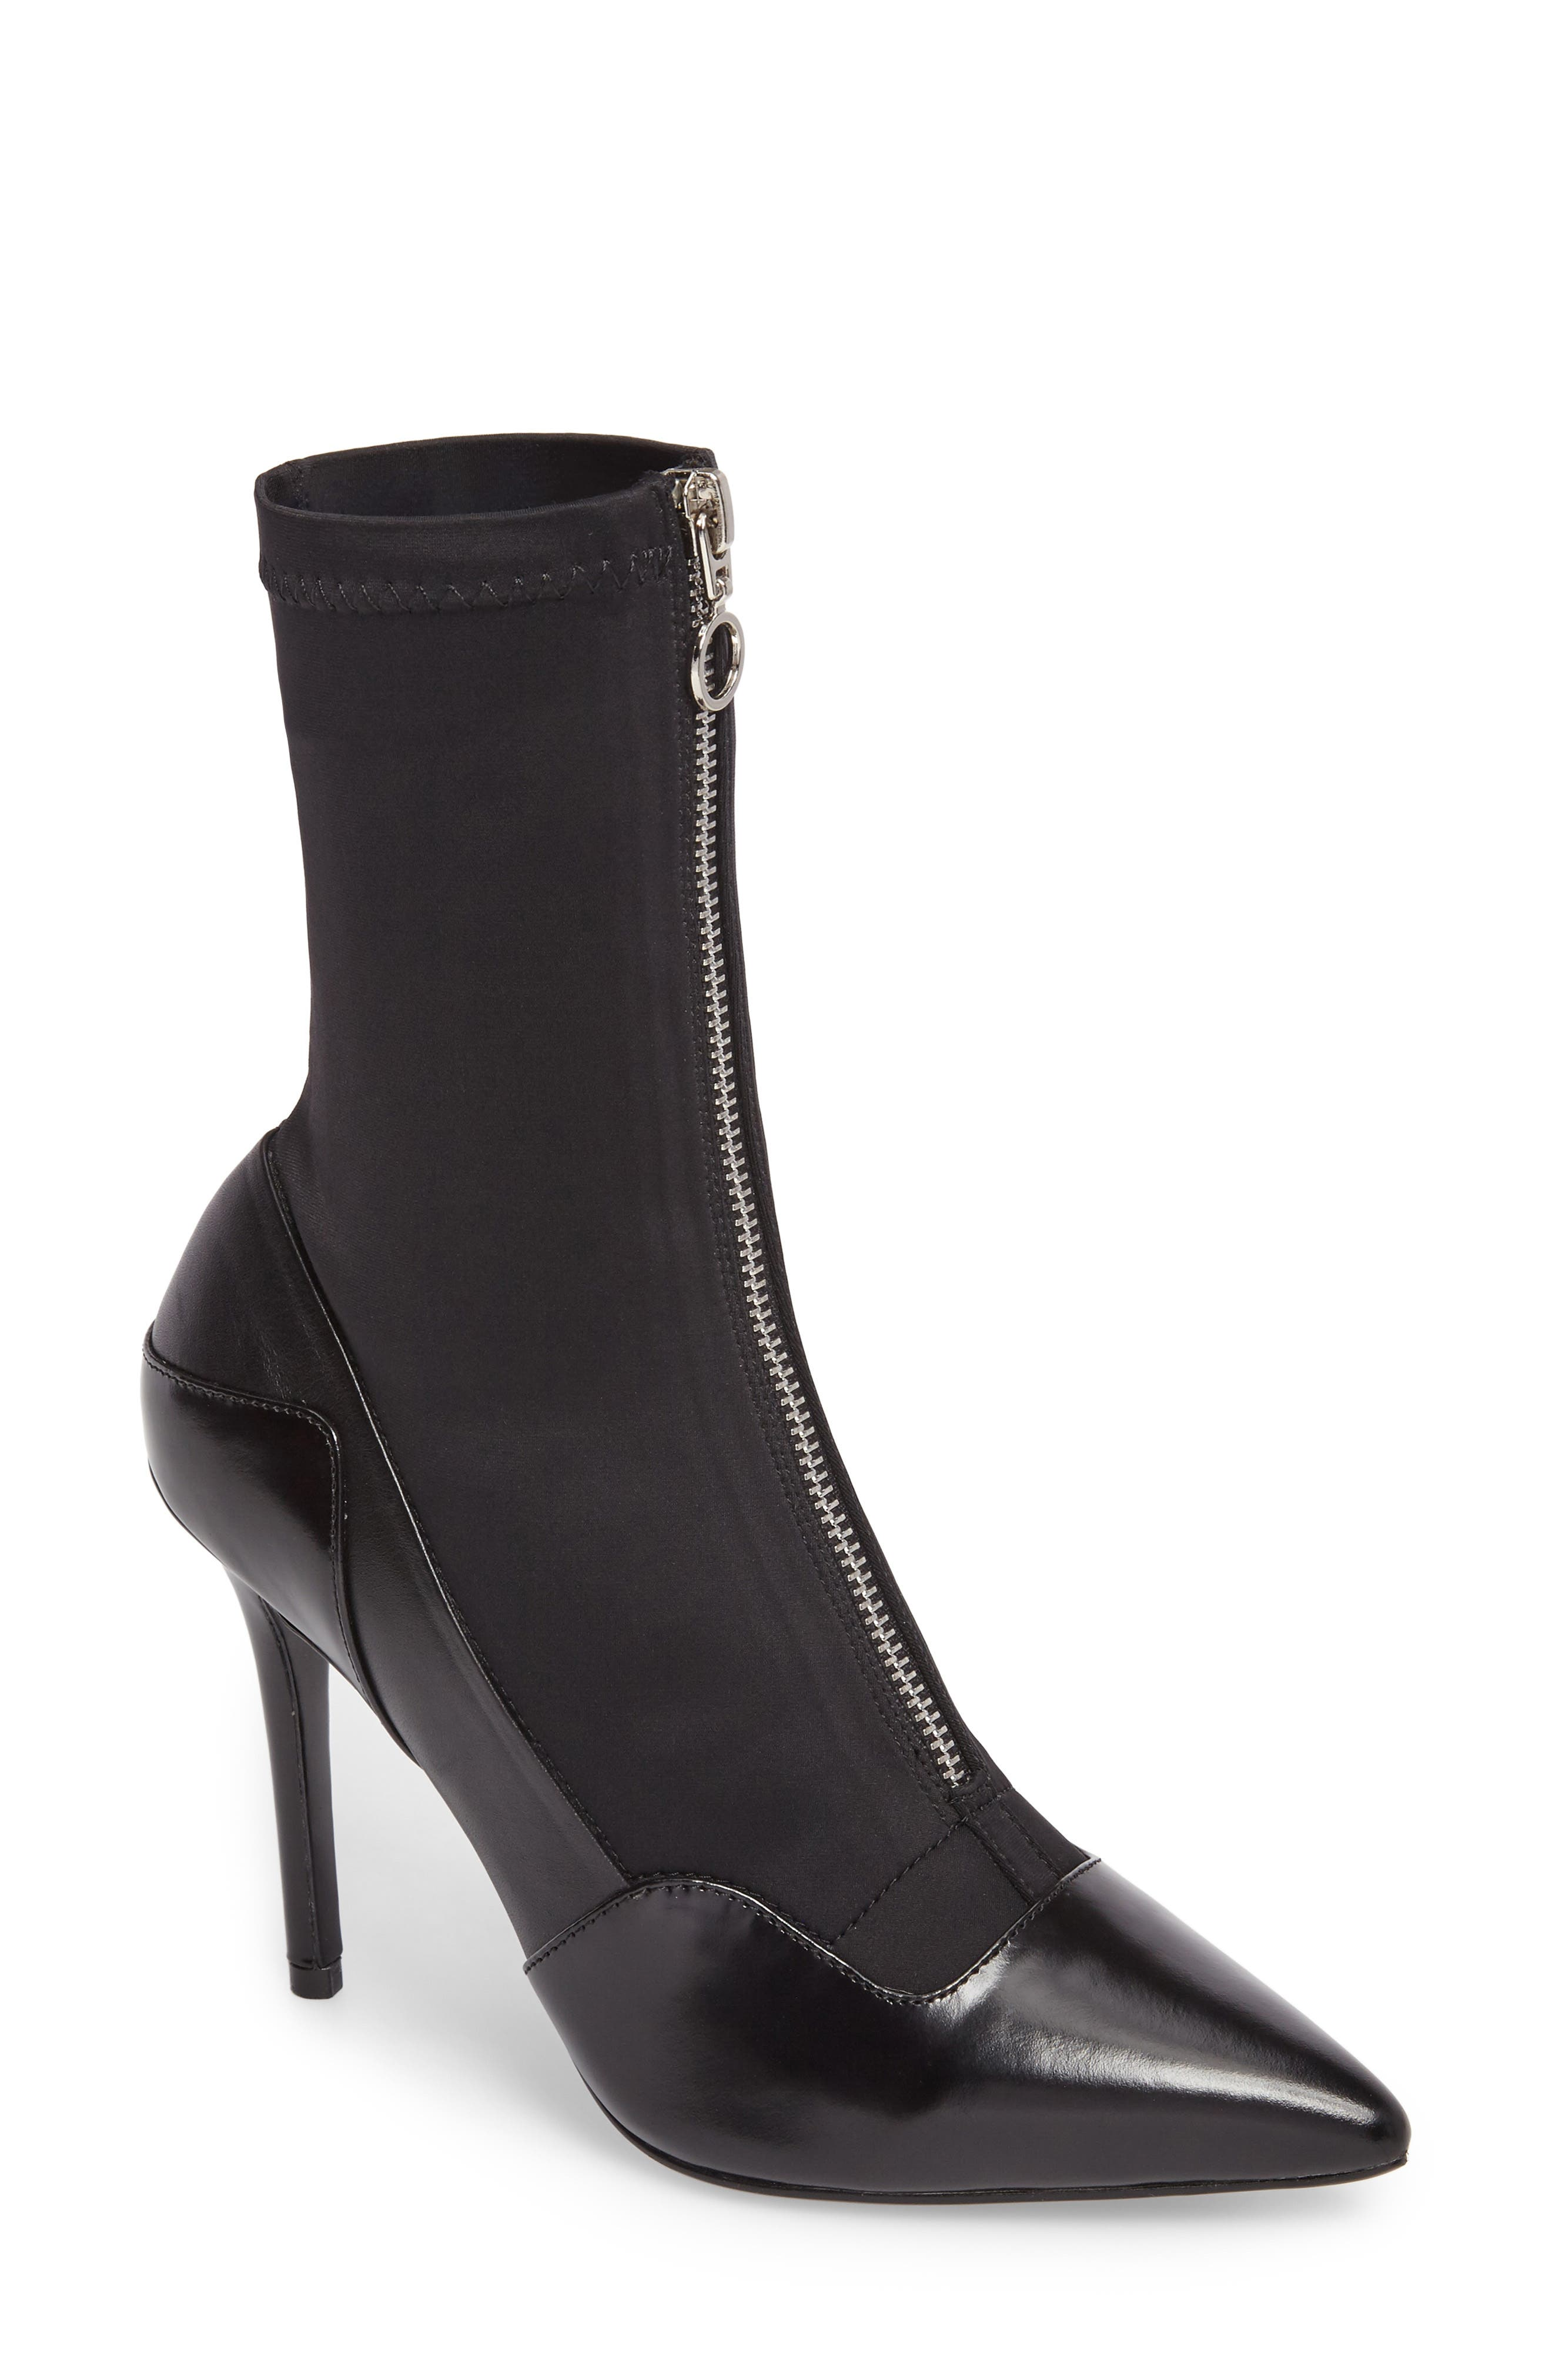 Alternate Image 1 Selected - Tony Bianco Dini Stiletto Stretch Bootie (Women)